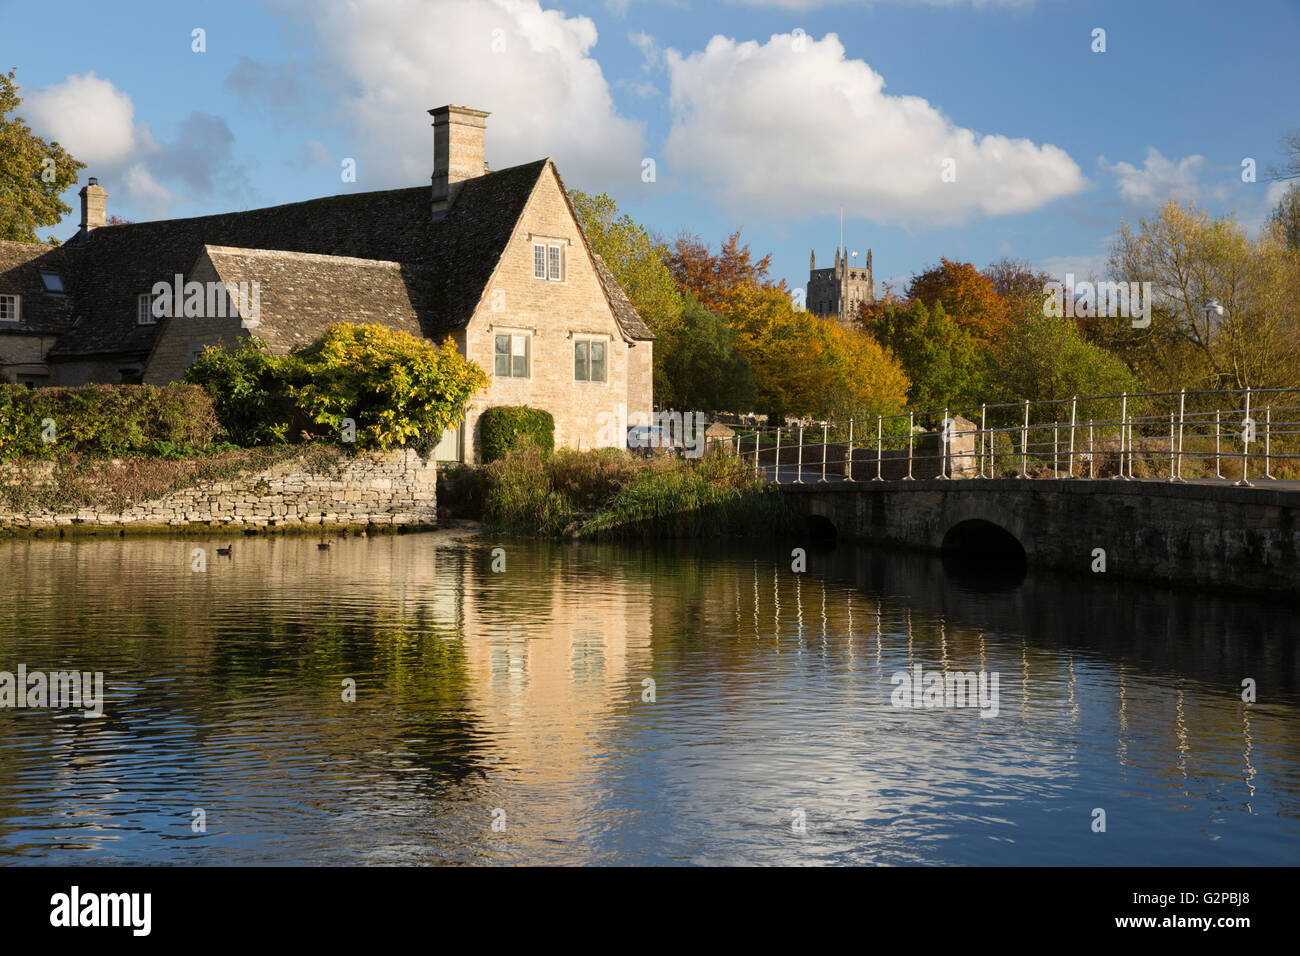 Cottage and church on the River Coln in autumn, Fairford, Cotswolds, Gloucestershire, England, United Kingdom, Europe - Stock Image